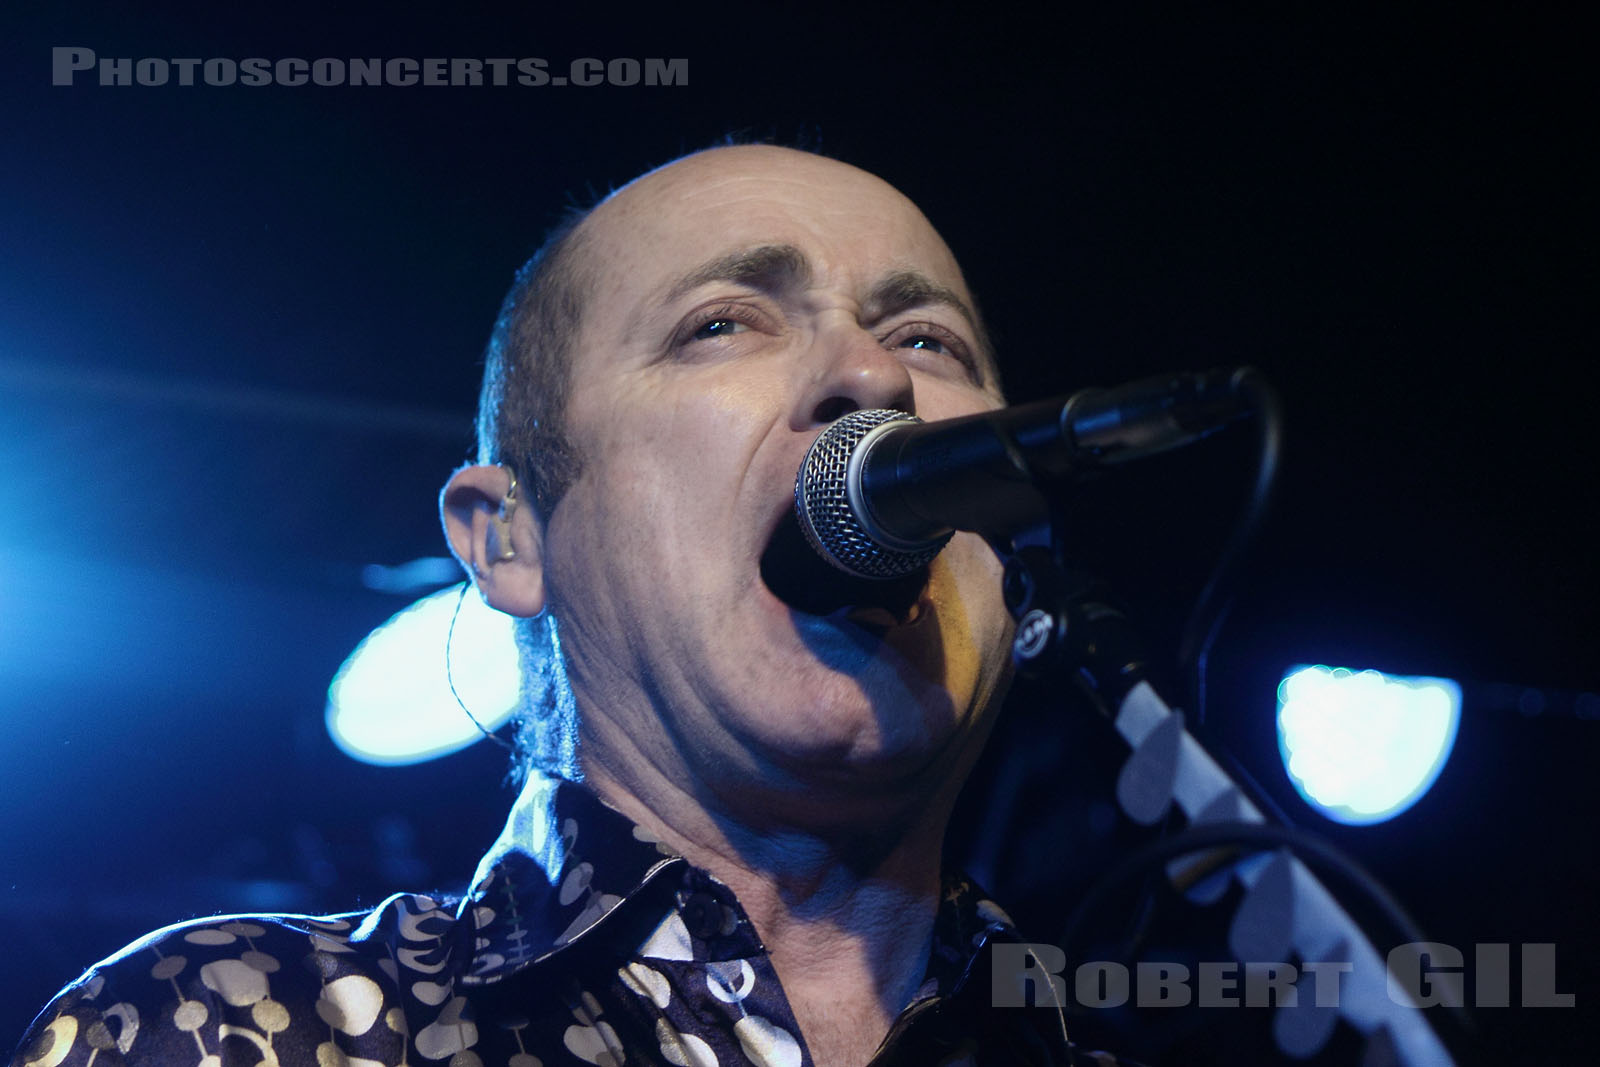 HOODOO GURUS - 2010-09-29 - PARIS - La Chaufferie (du Moulin Rouge)